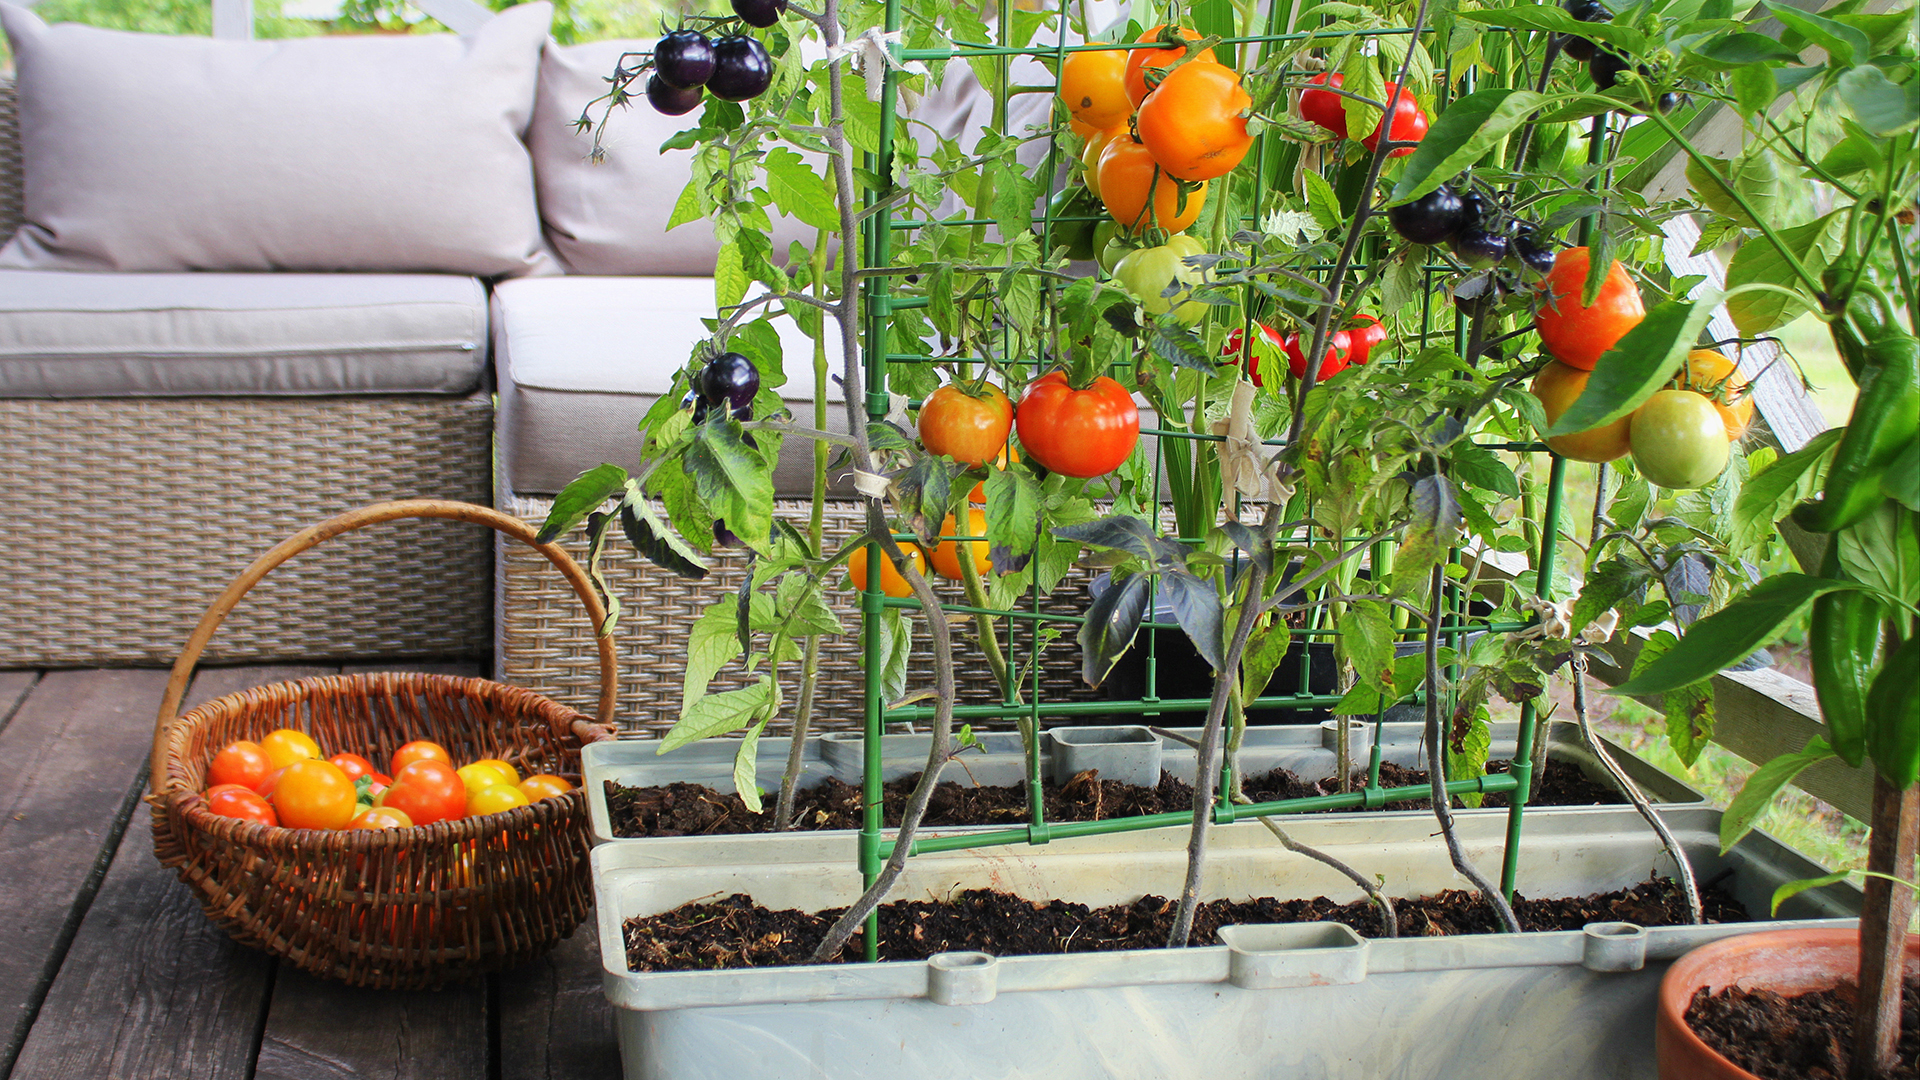 Garden Ideas Easy Vegetables To Grow In Backyard Gardens And Beyond Cnn Underscored